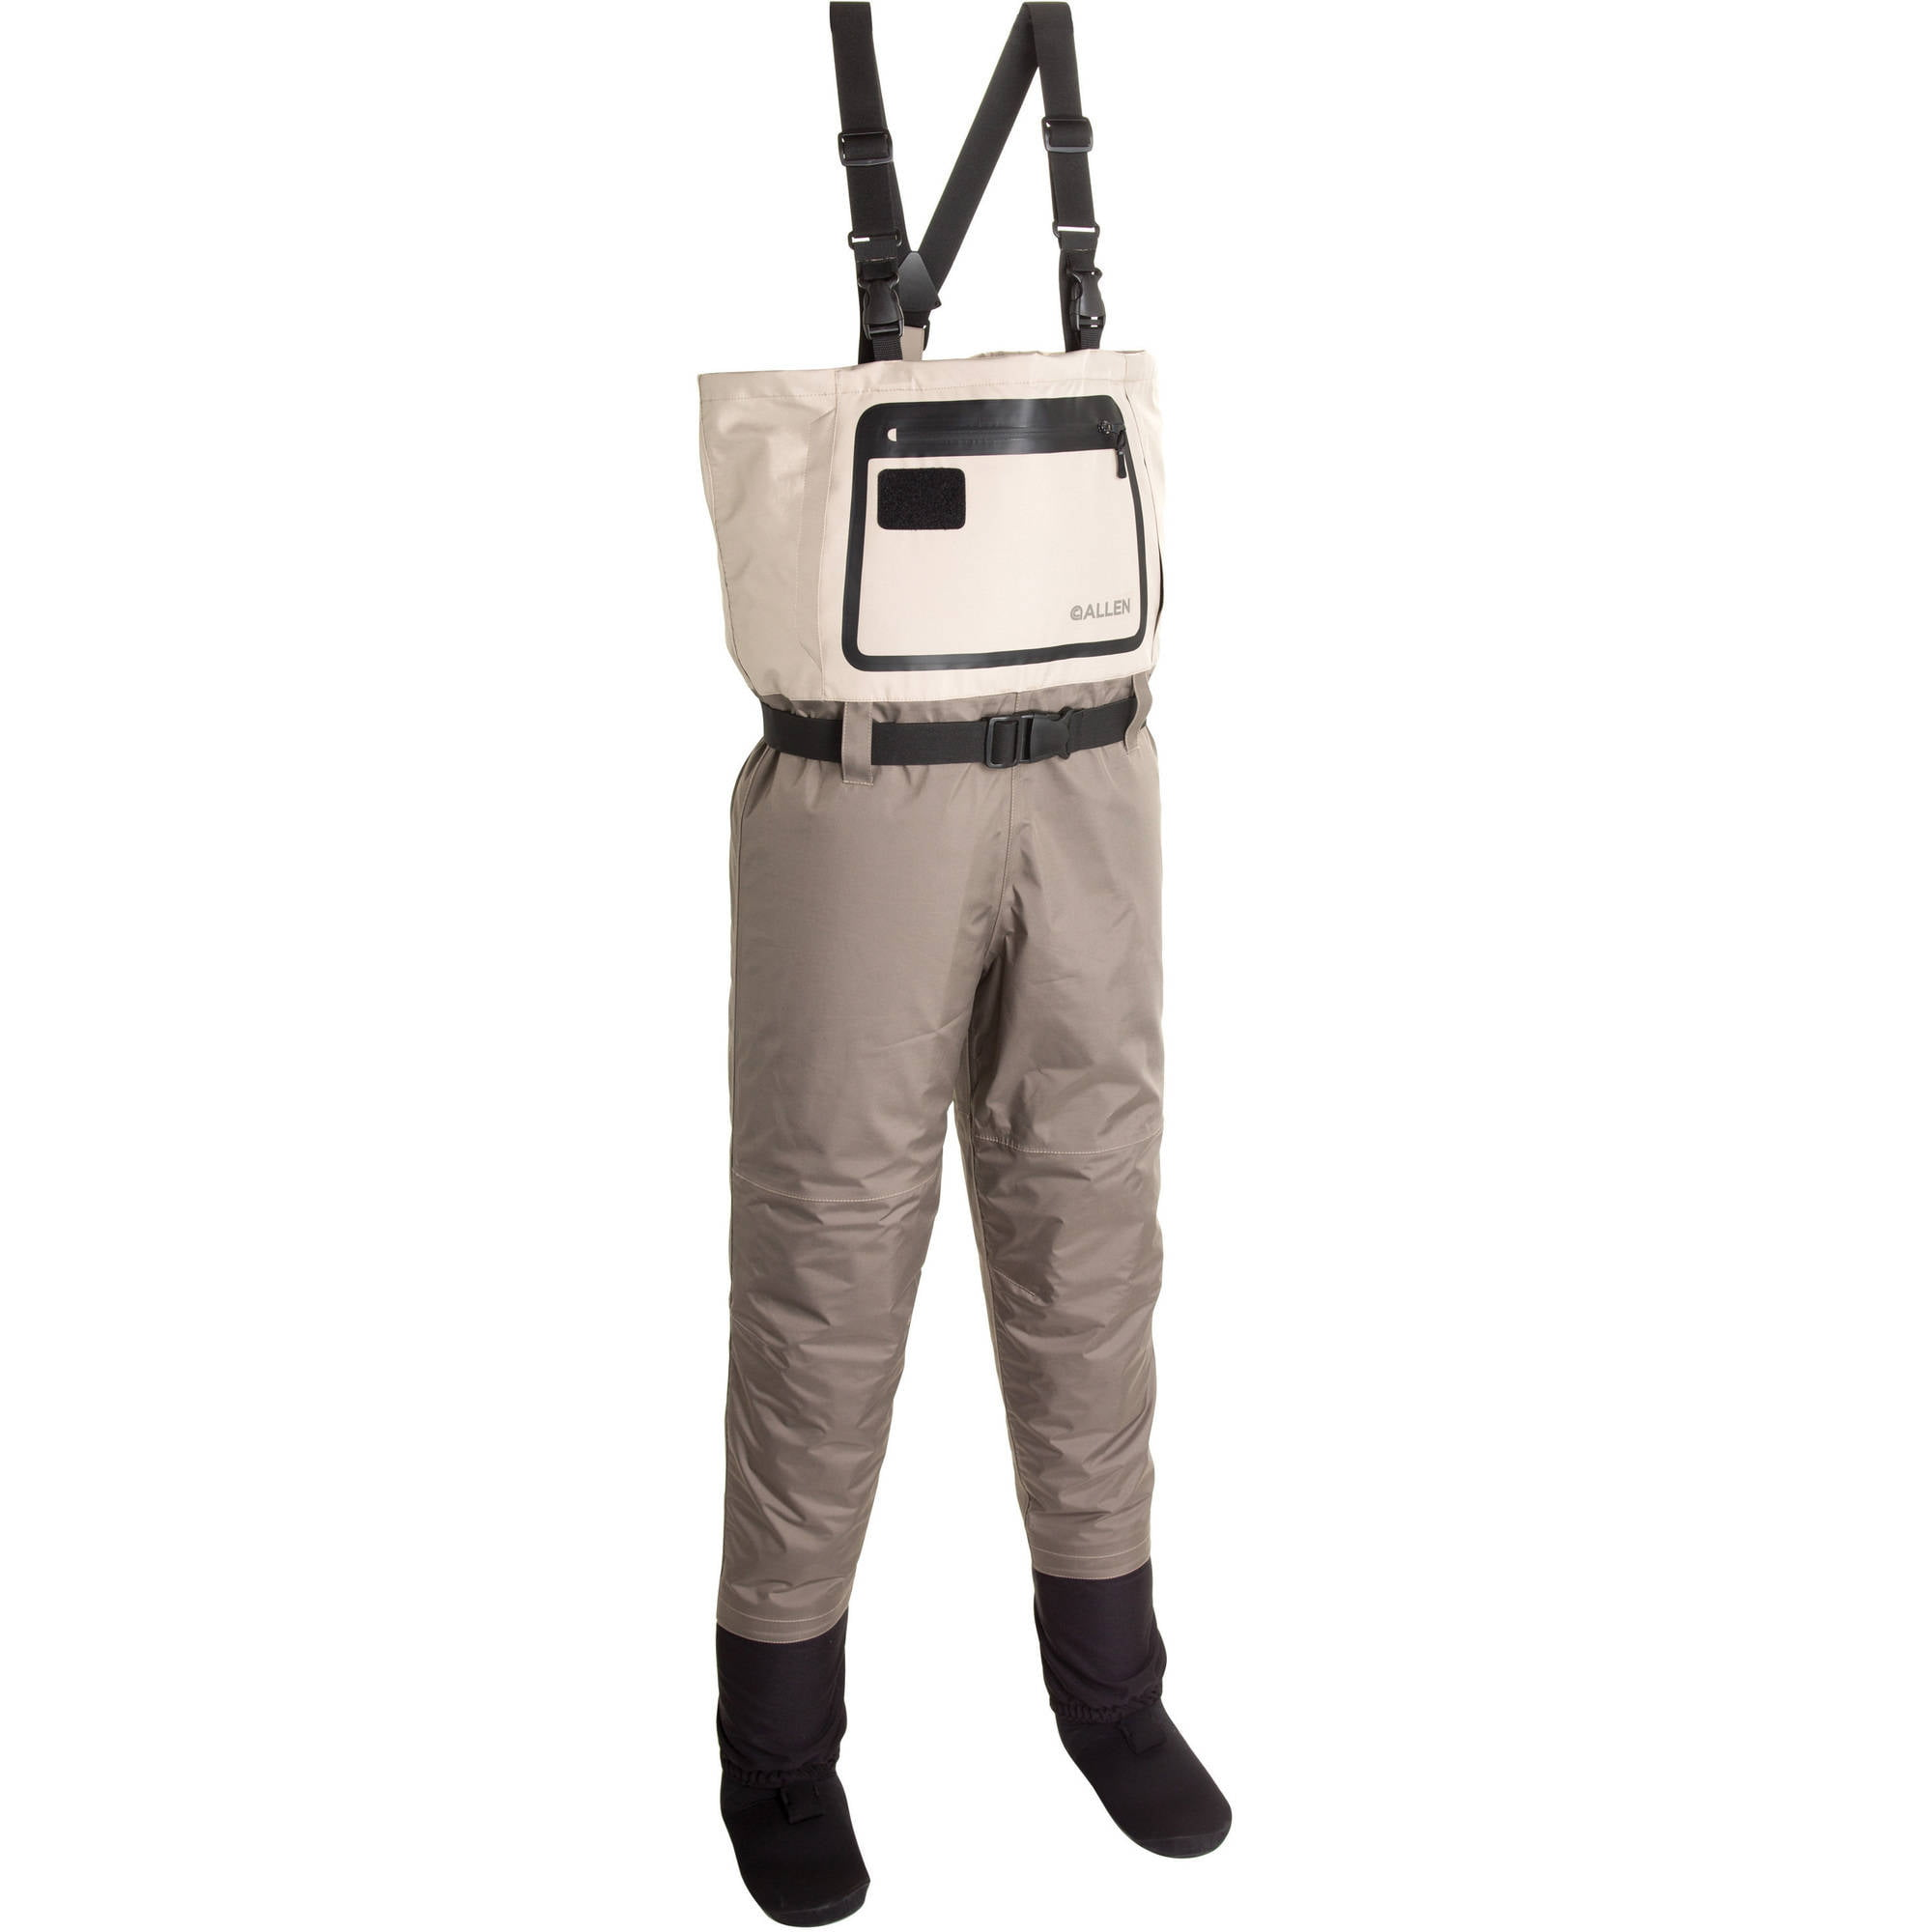 Allen Sweetwater Guide Convertible Stockingfoot Waders, 2XL by Allen Company